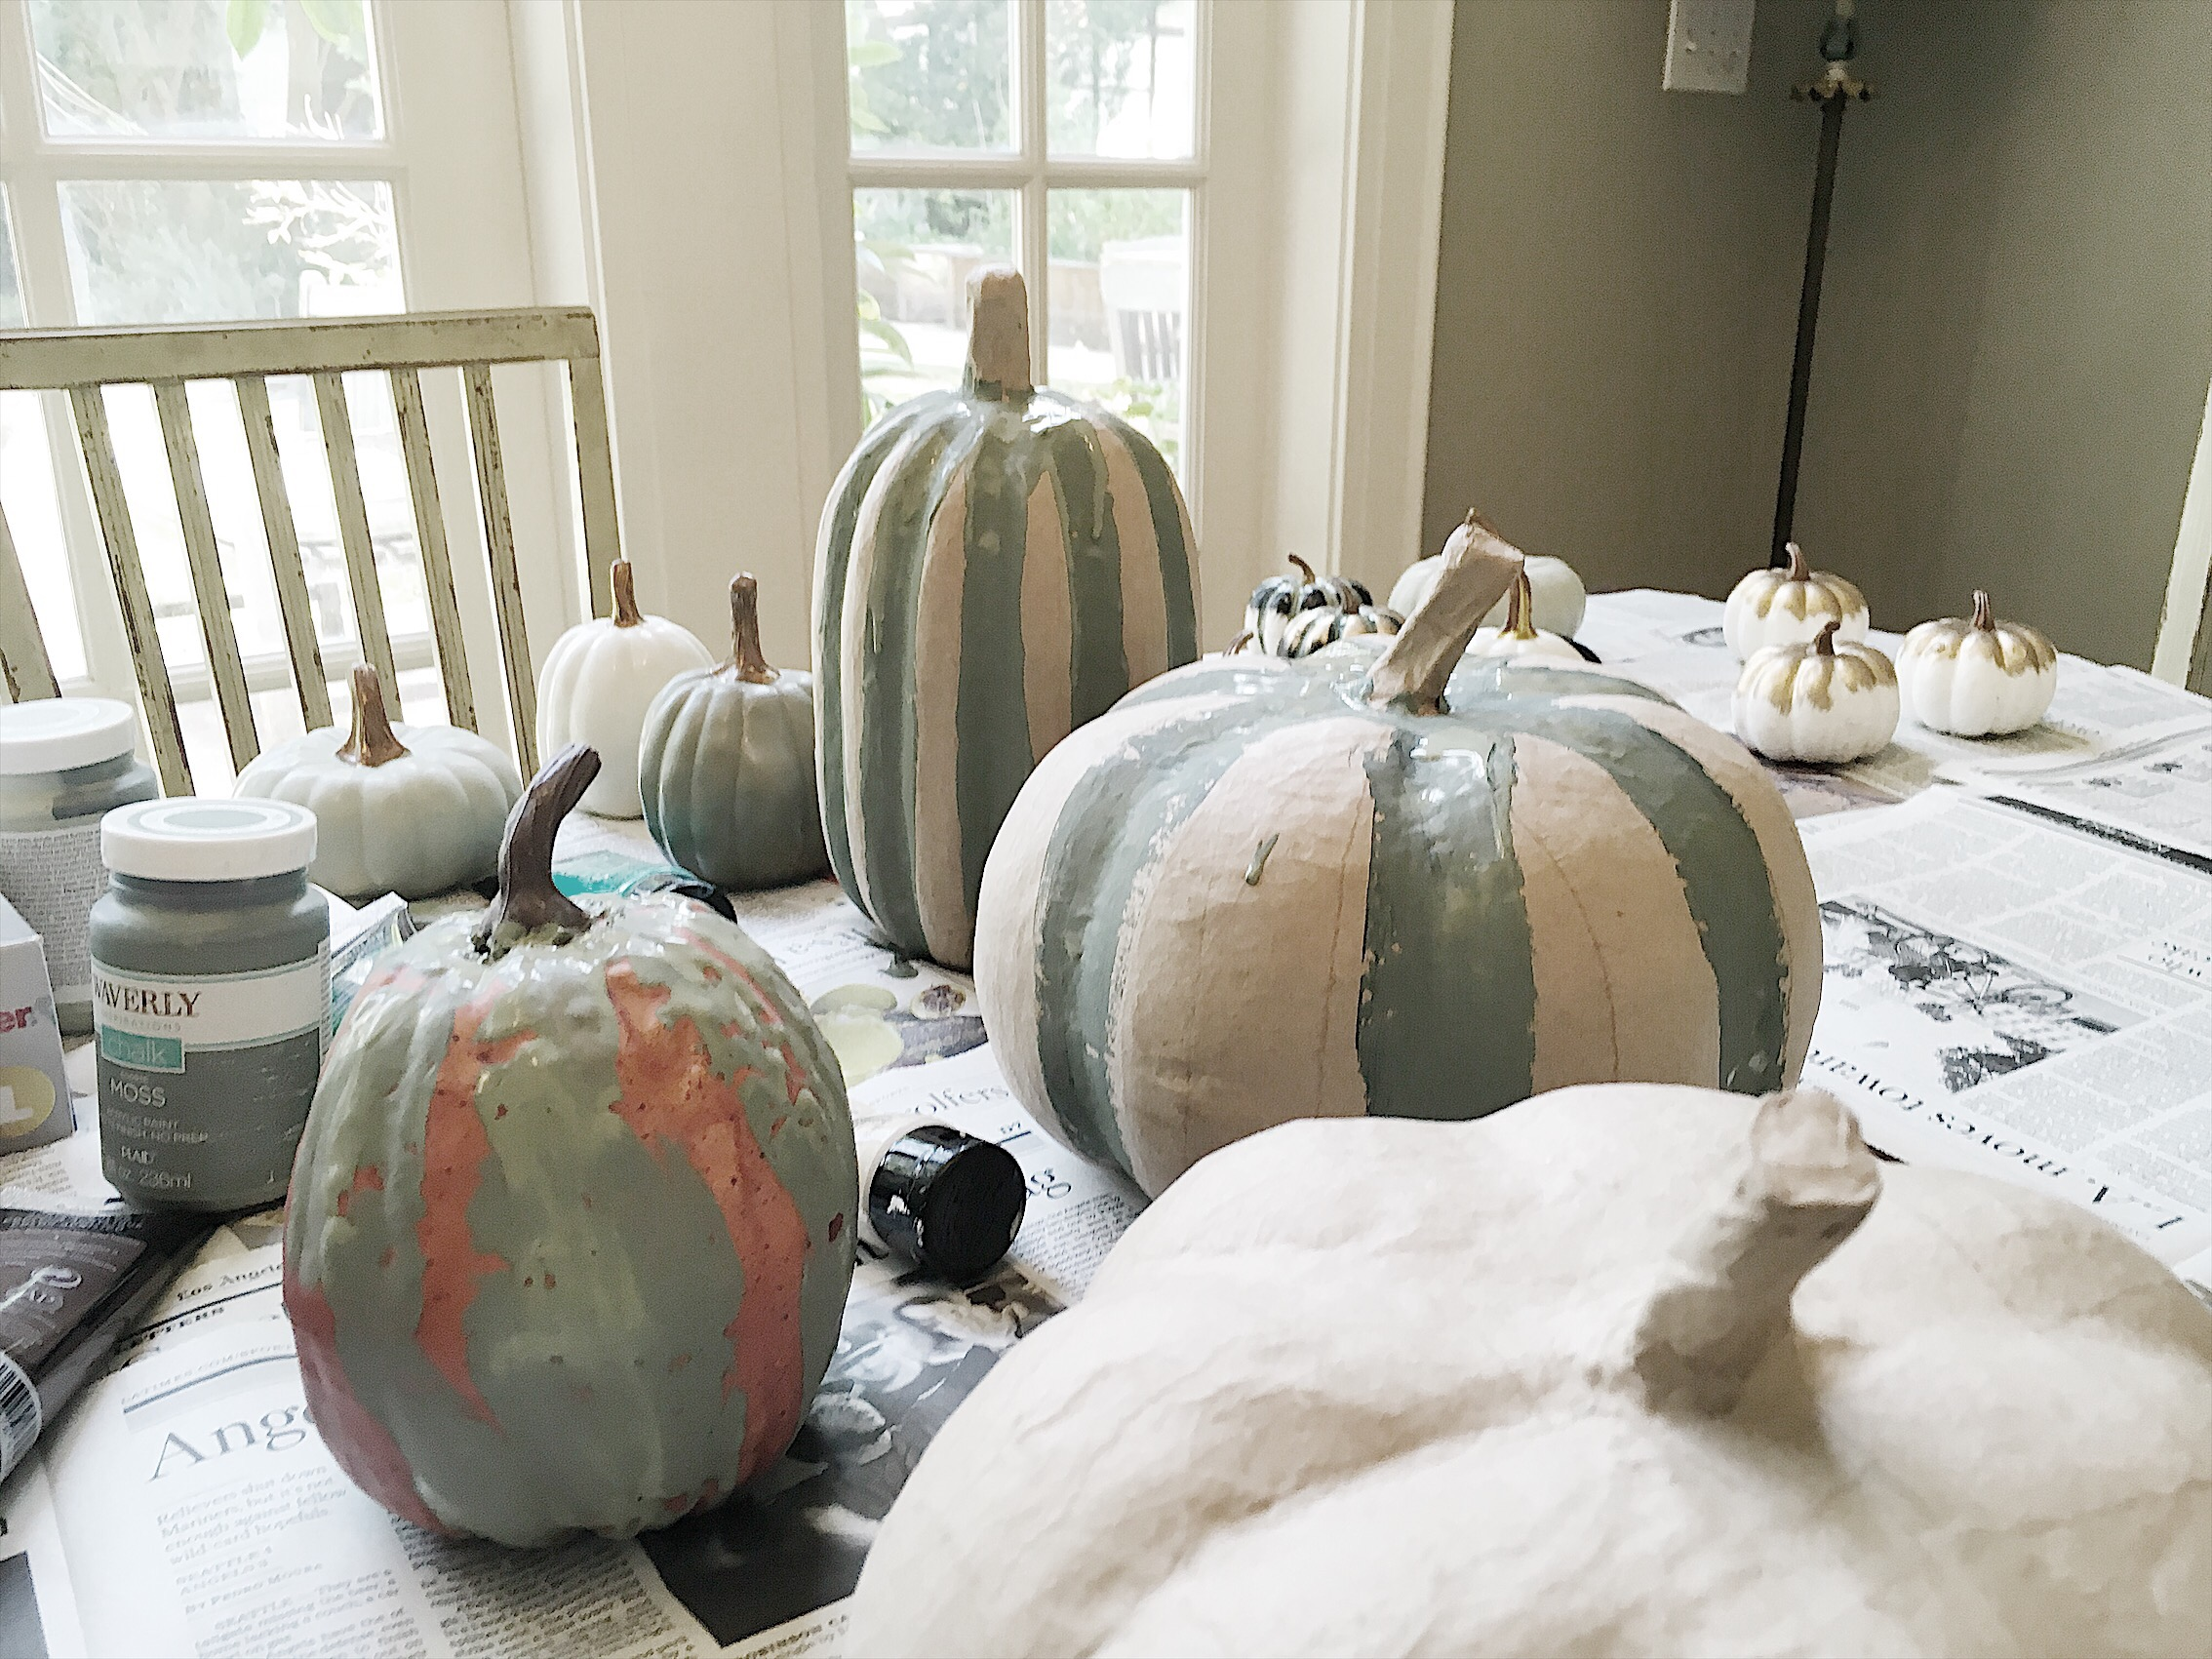 Updating This Years Fall Decor // Painting Pumpkins